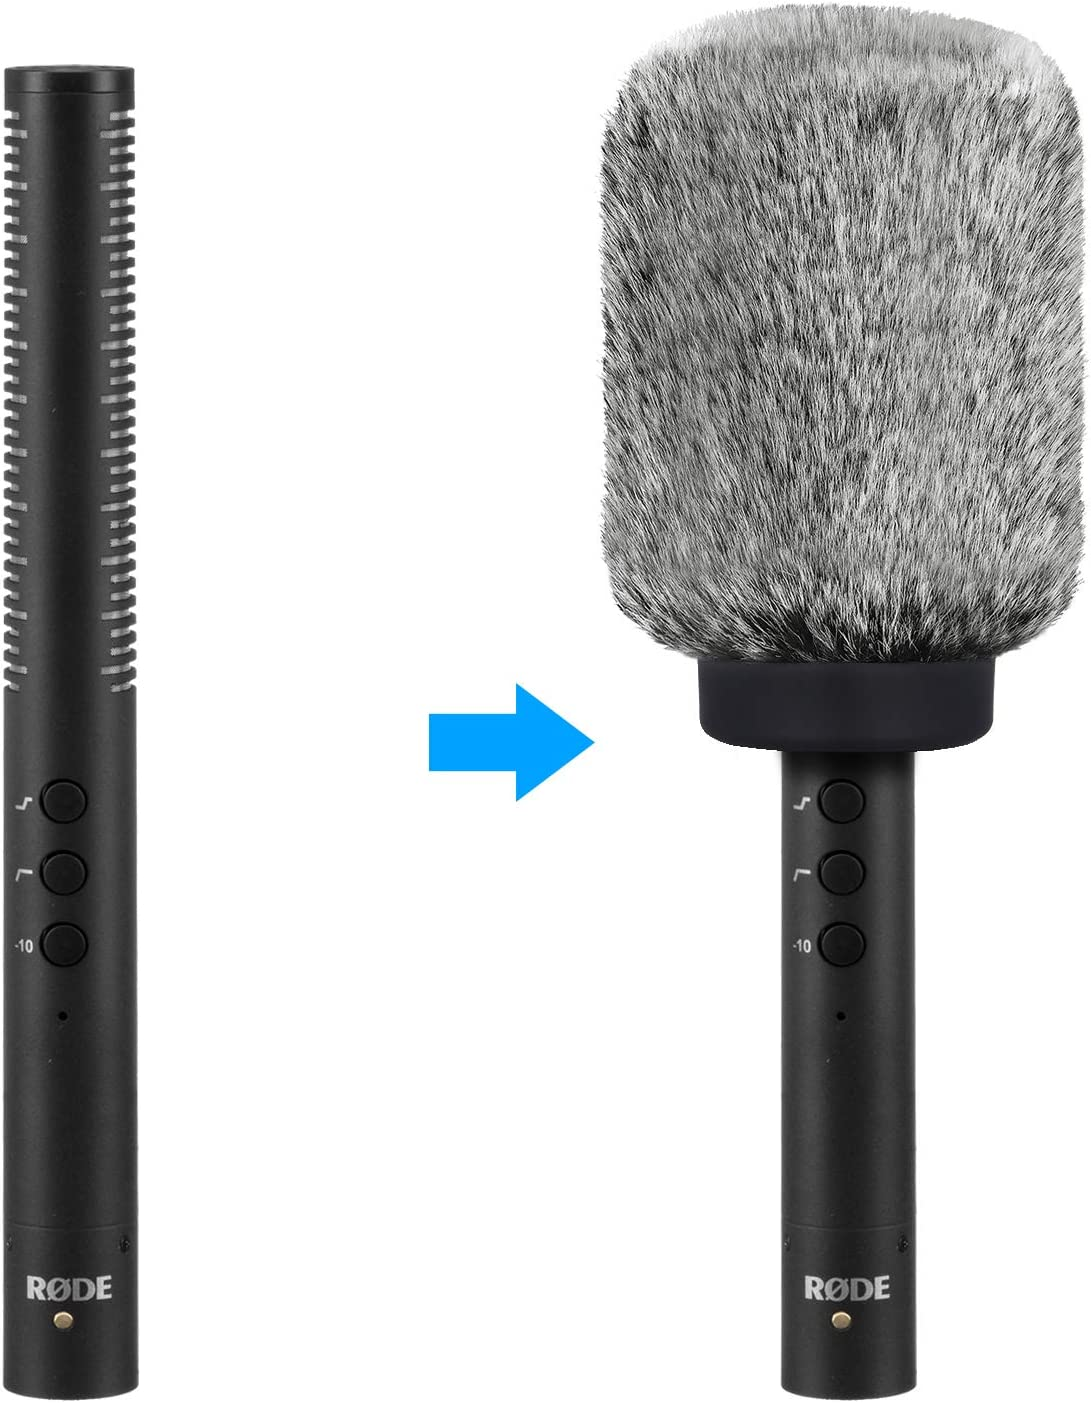 Mic Windscreen//Windmuff for Rode NTG4 Black White NTG4 Microphone WindShield Audio-Technica AT875R Shotgun Microphones and Other Mics in Diameter of 18-24mm by YOUSHARES